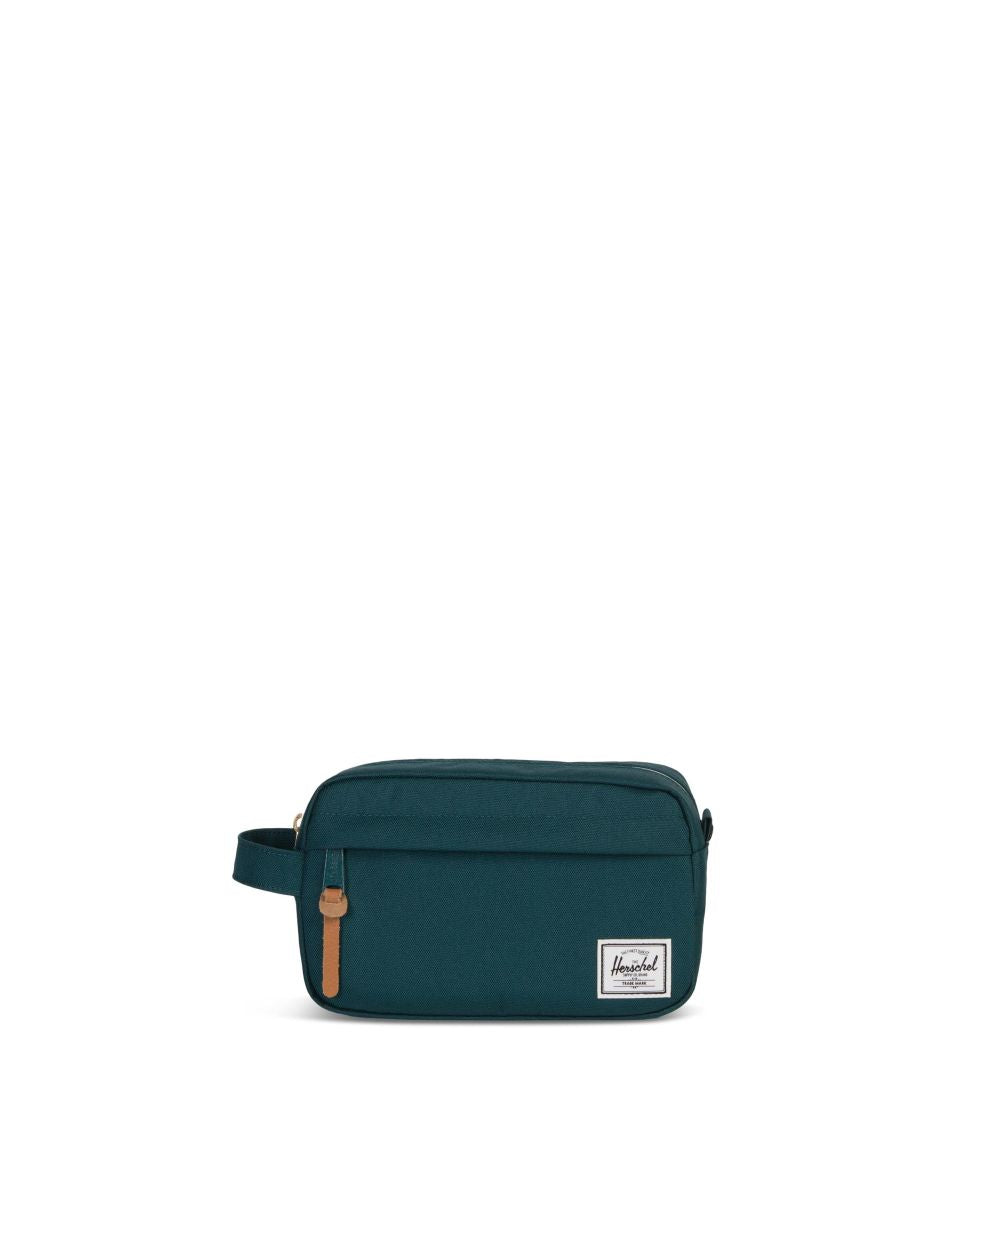 Herschel Supply Co -  Chapter Travel Kit Carry-On, Deep Teal